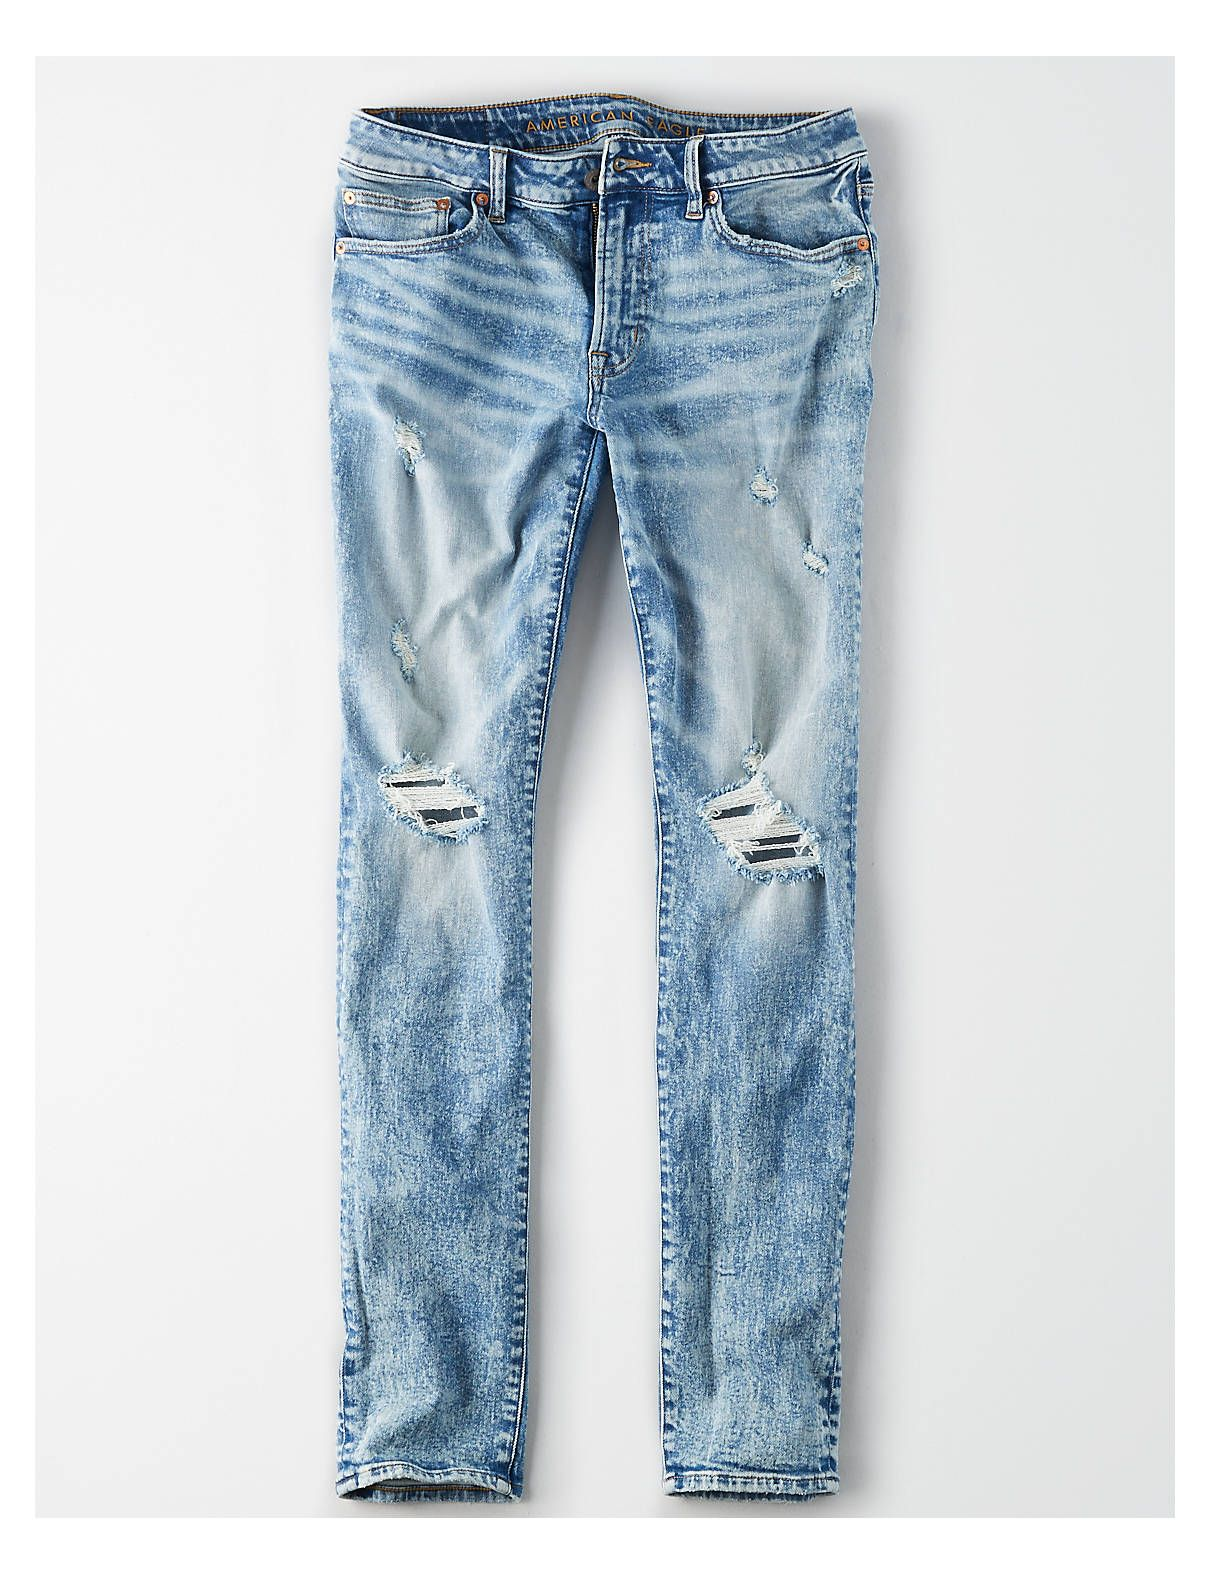 9d7b177a817 AE Flex Slim Jean, Light Acid Wash | American Eagle Outfitters ...